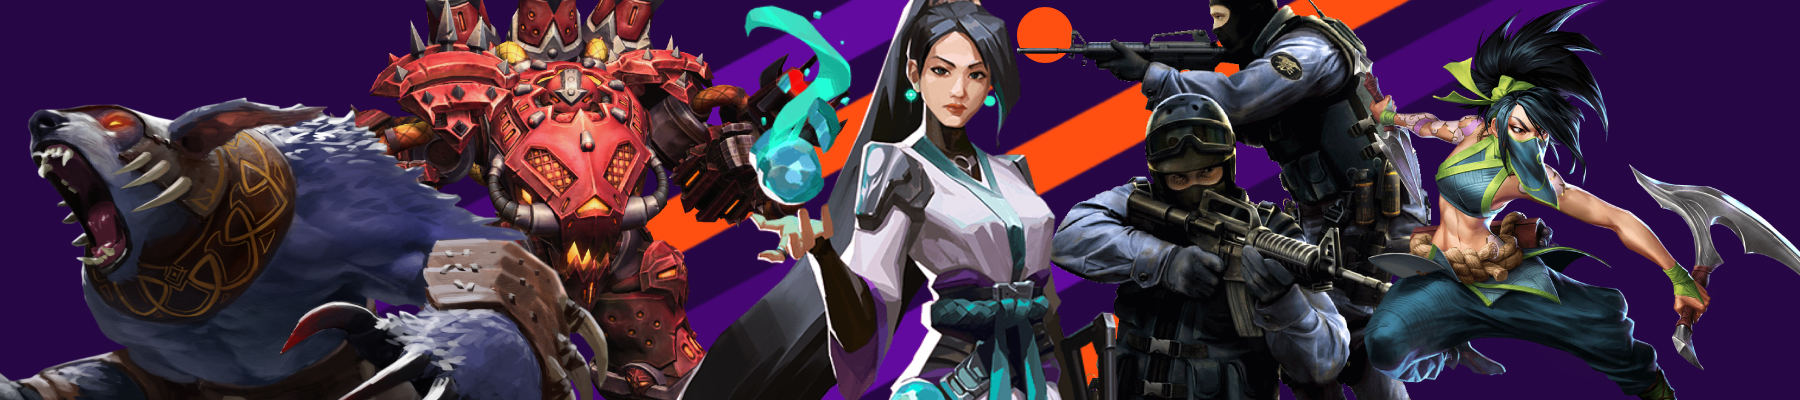 Games Banner Page Main